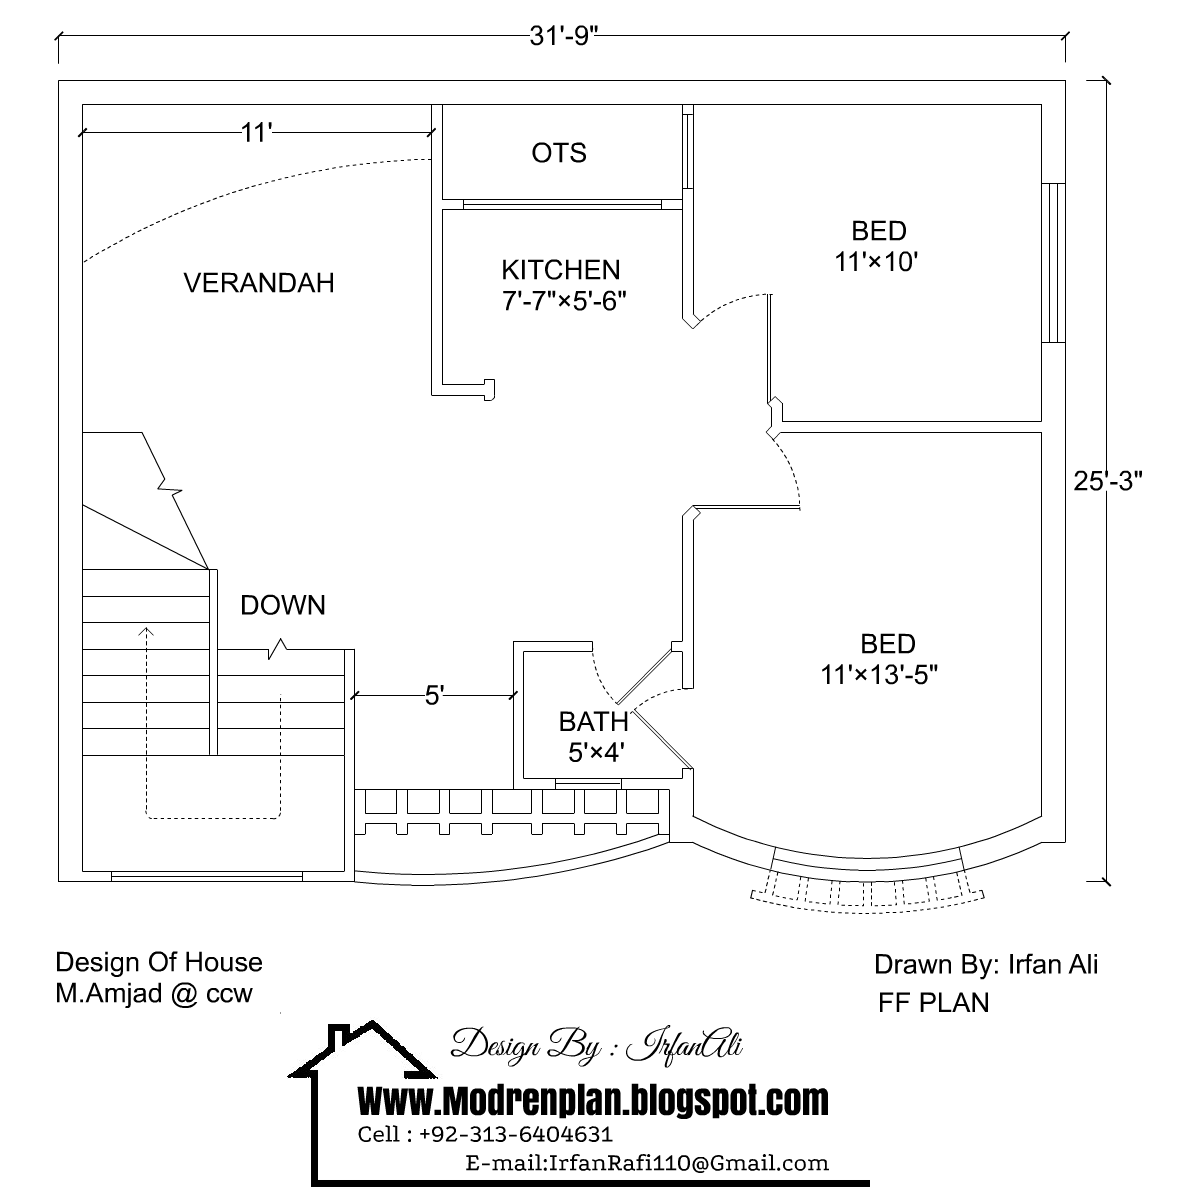 3 marla house plan 31 39 9 25 39 3 house plan House map drawing images